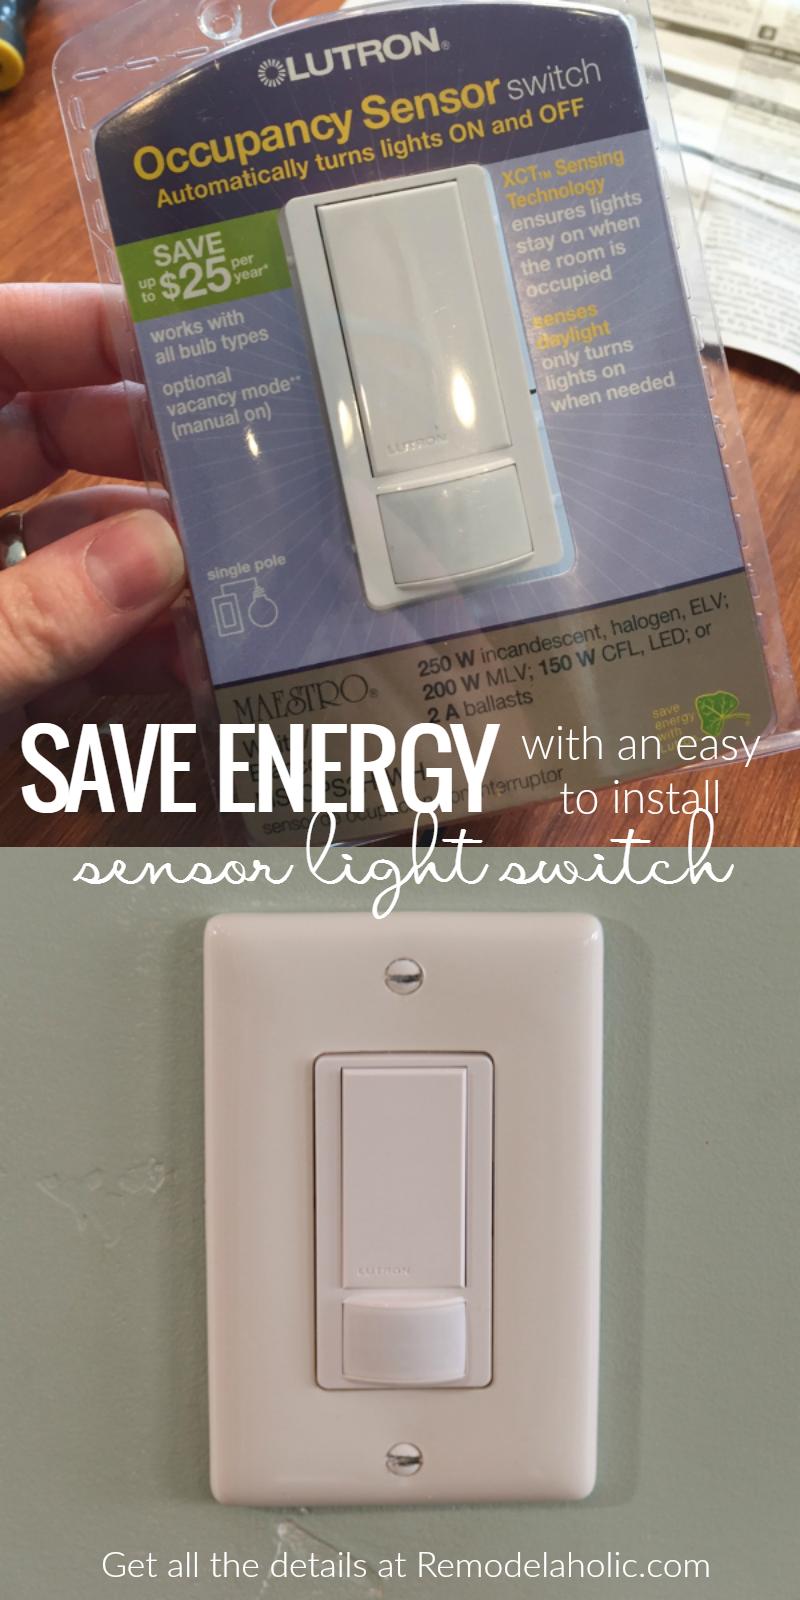 Bathroom Light Goes Off And On remodelaholic | automatic light switch!